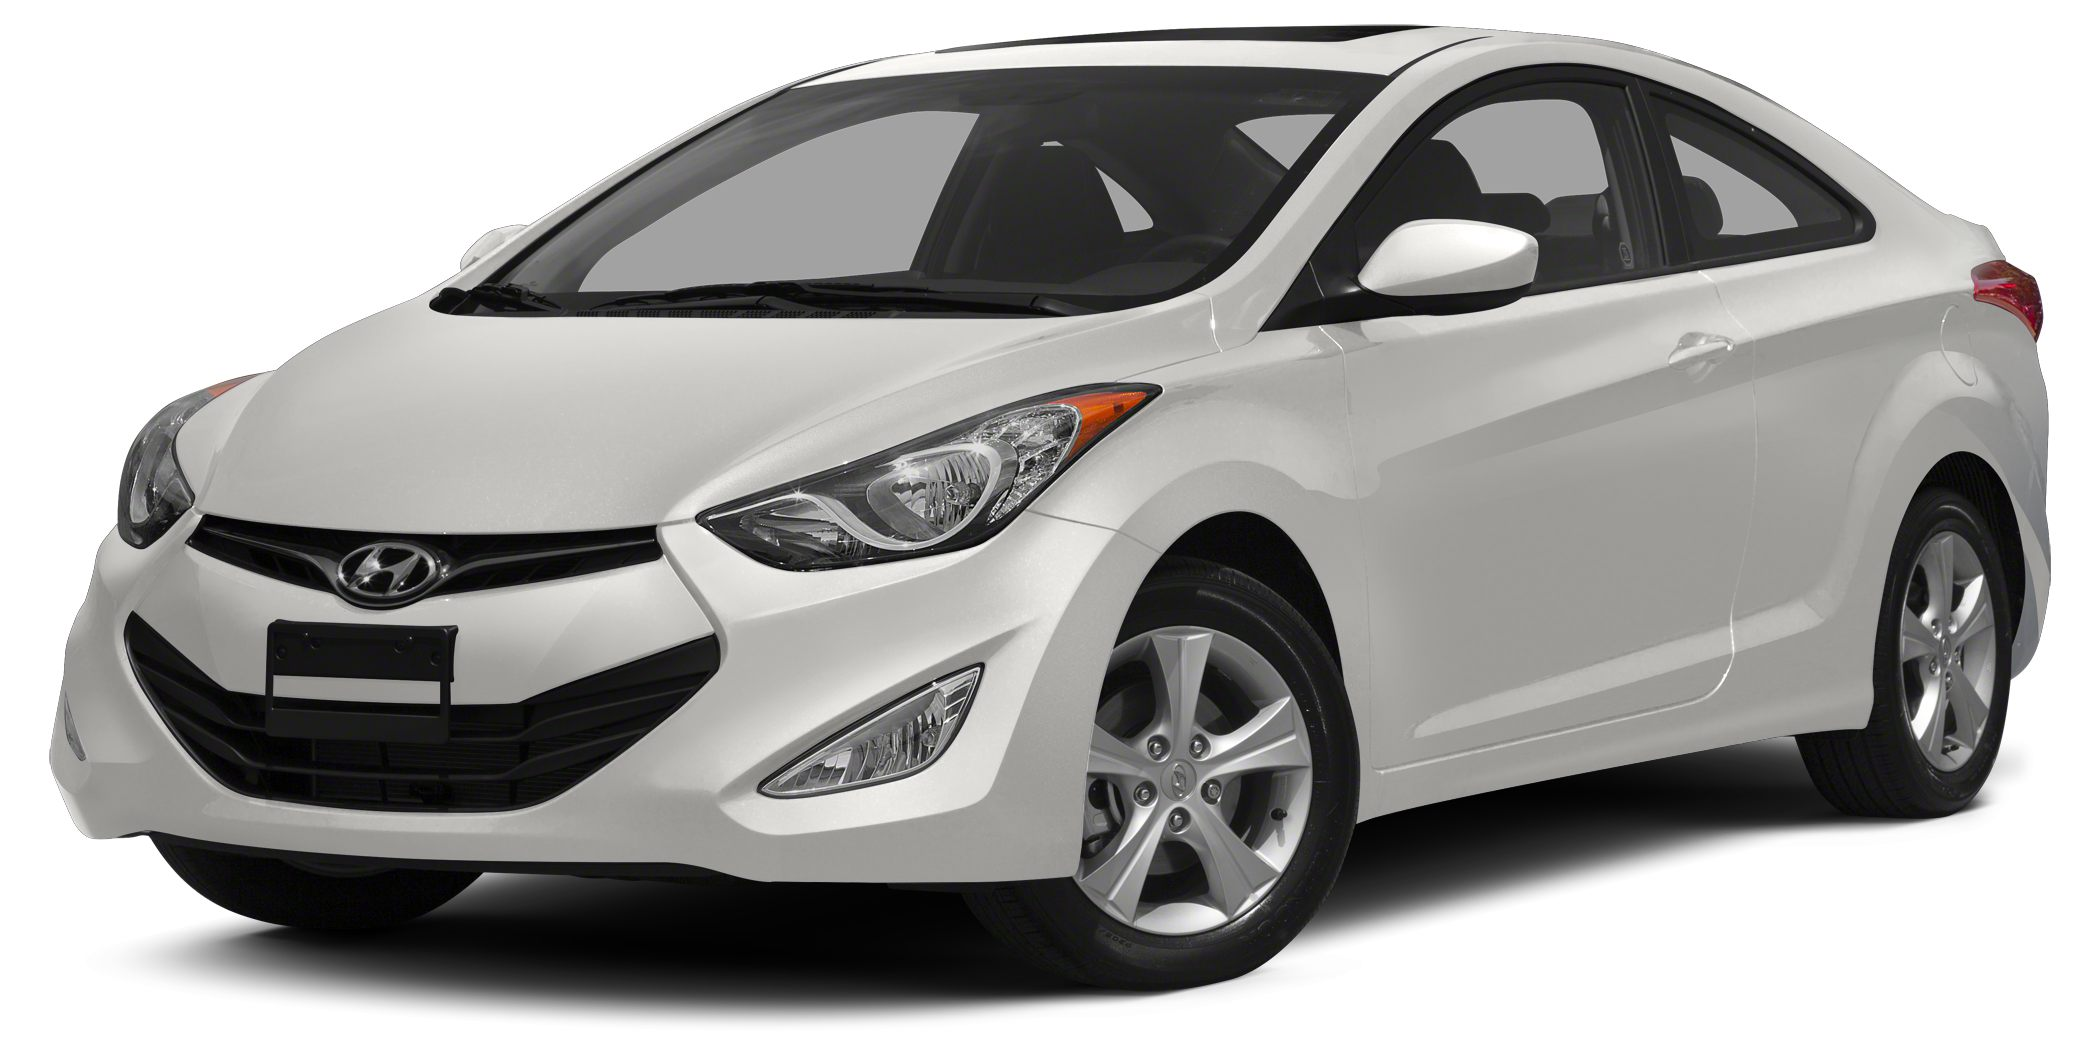 2013 Hyundai Elantra SE Hyundai Certified all serviced by us Take a look at this one owner Elantra